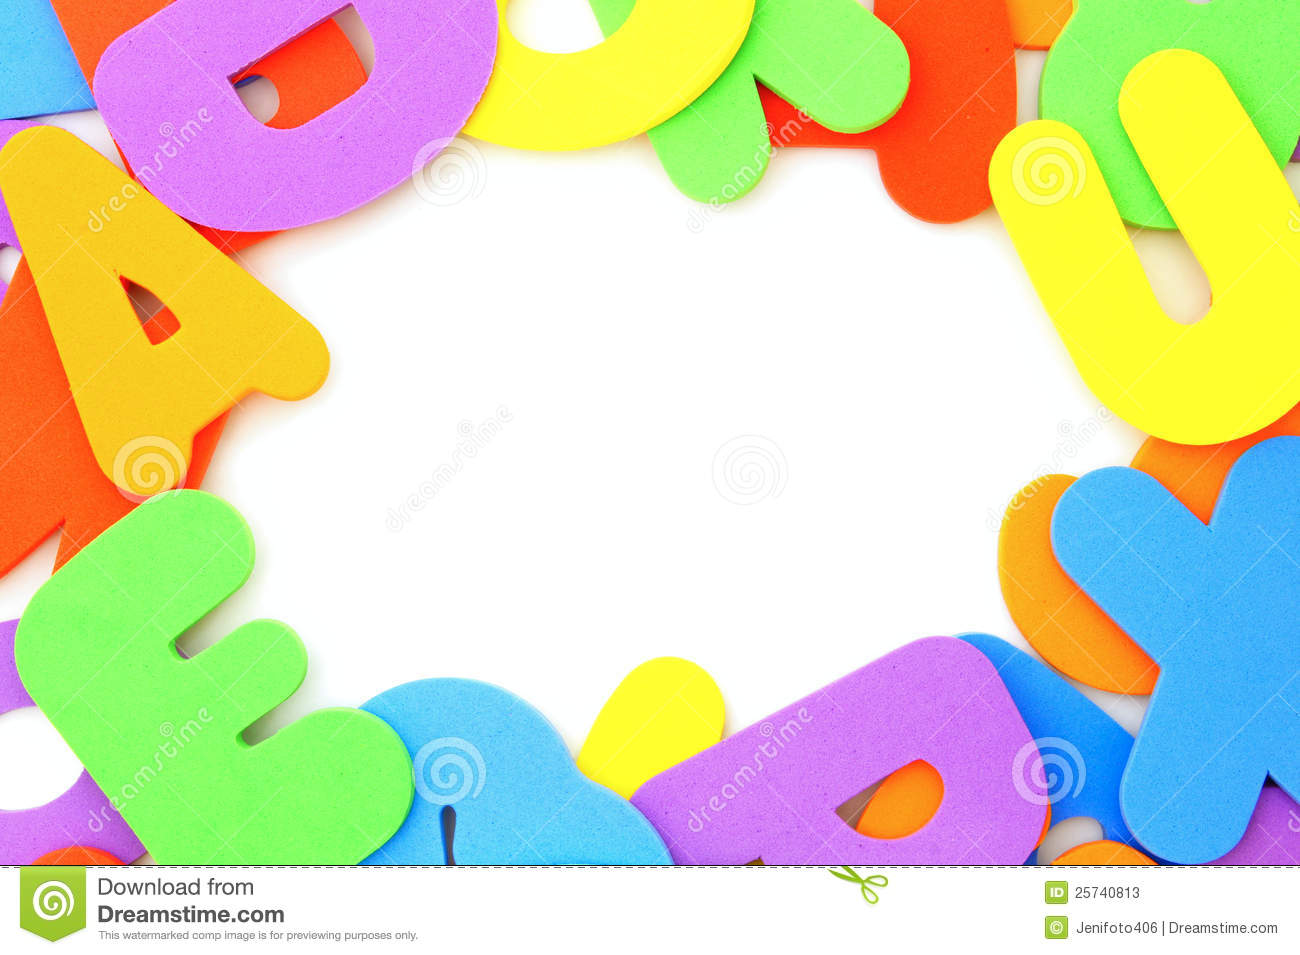 Colorful Letter Frame Stock Photos - Image: 25740813